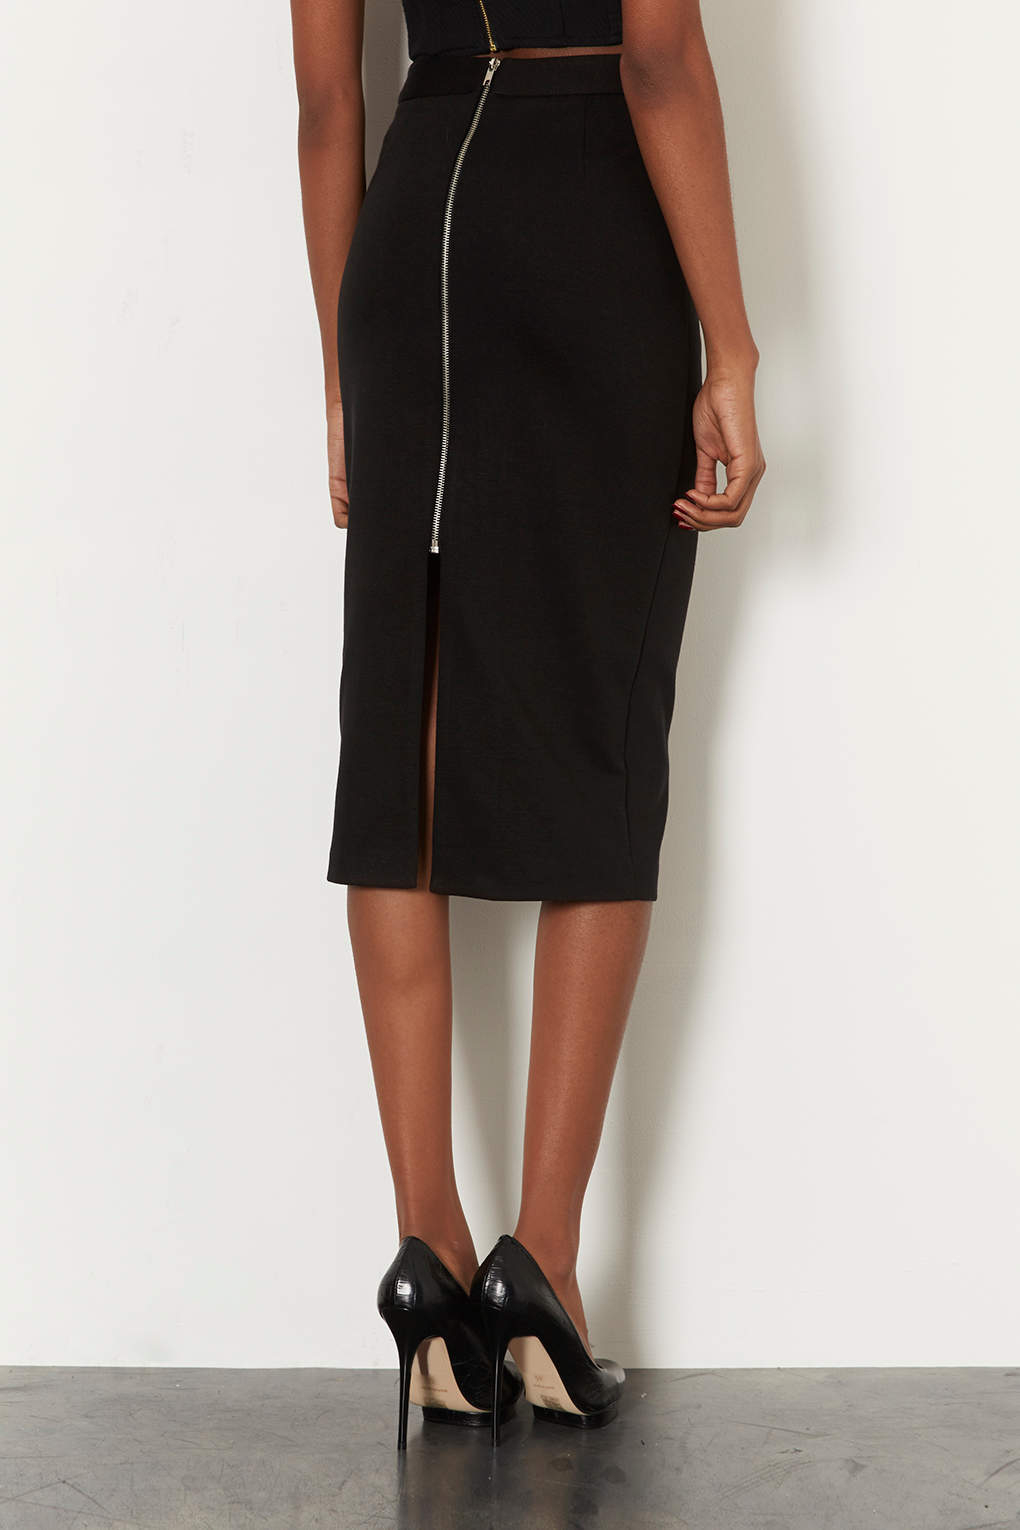 black pencil skirt with zip back dress ala